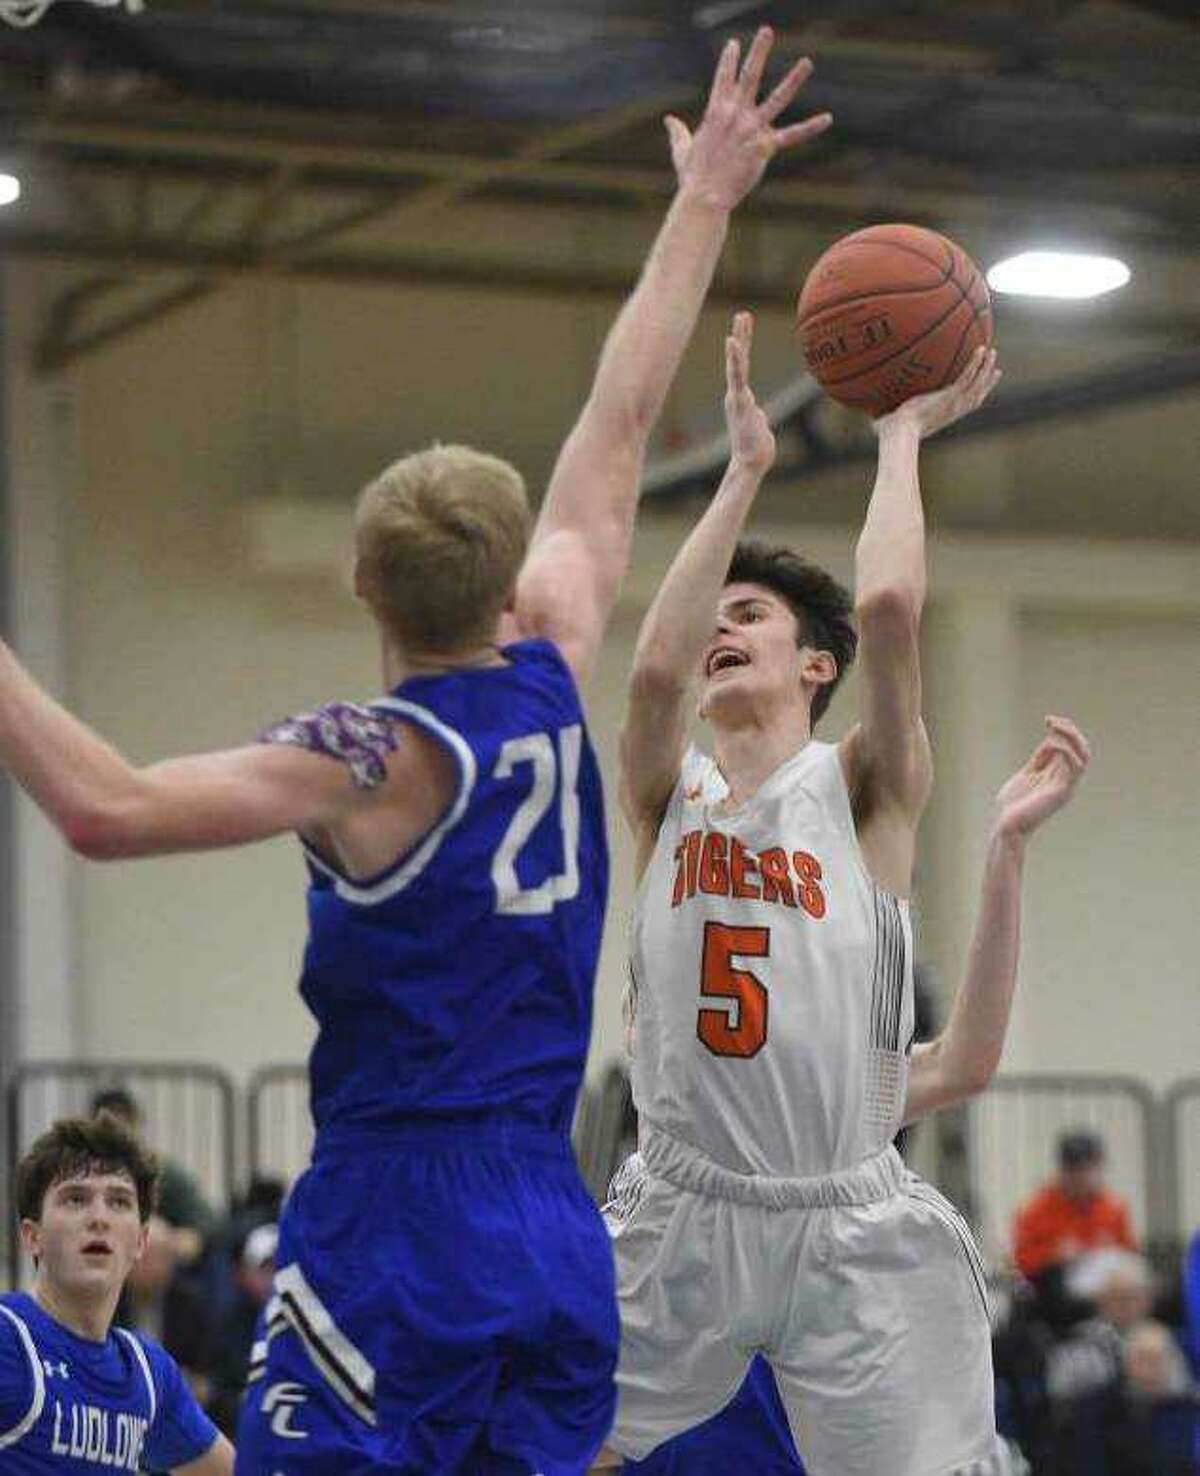 Amos Grey looks to take a shot during Ridgefield's win over Fairfield Ludlowe in the FCIAC semifinals.